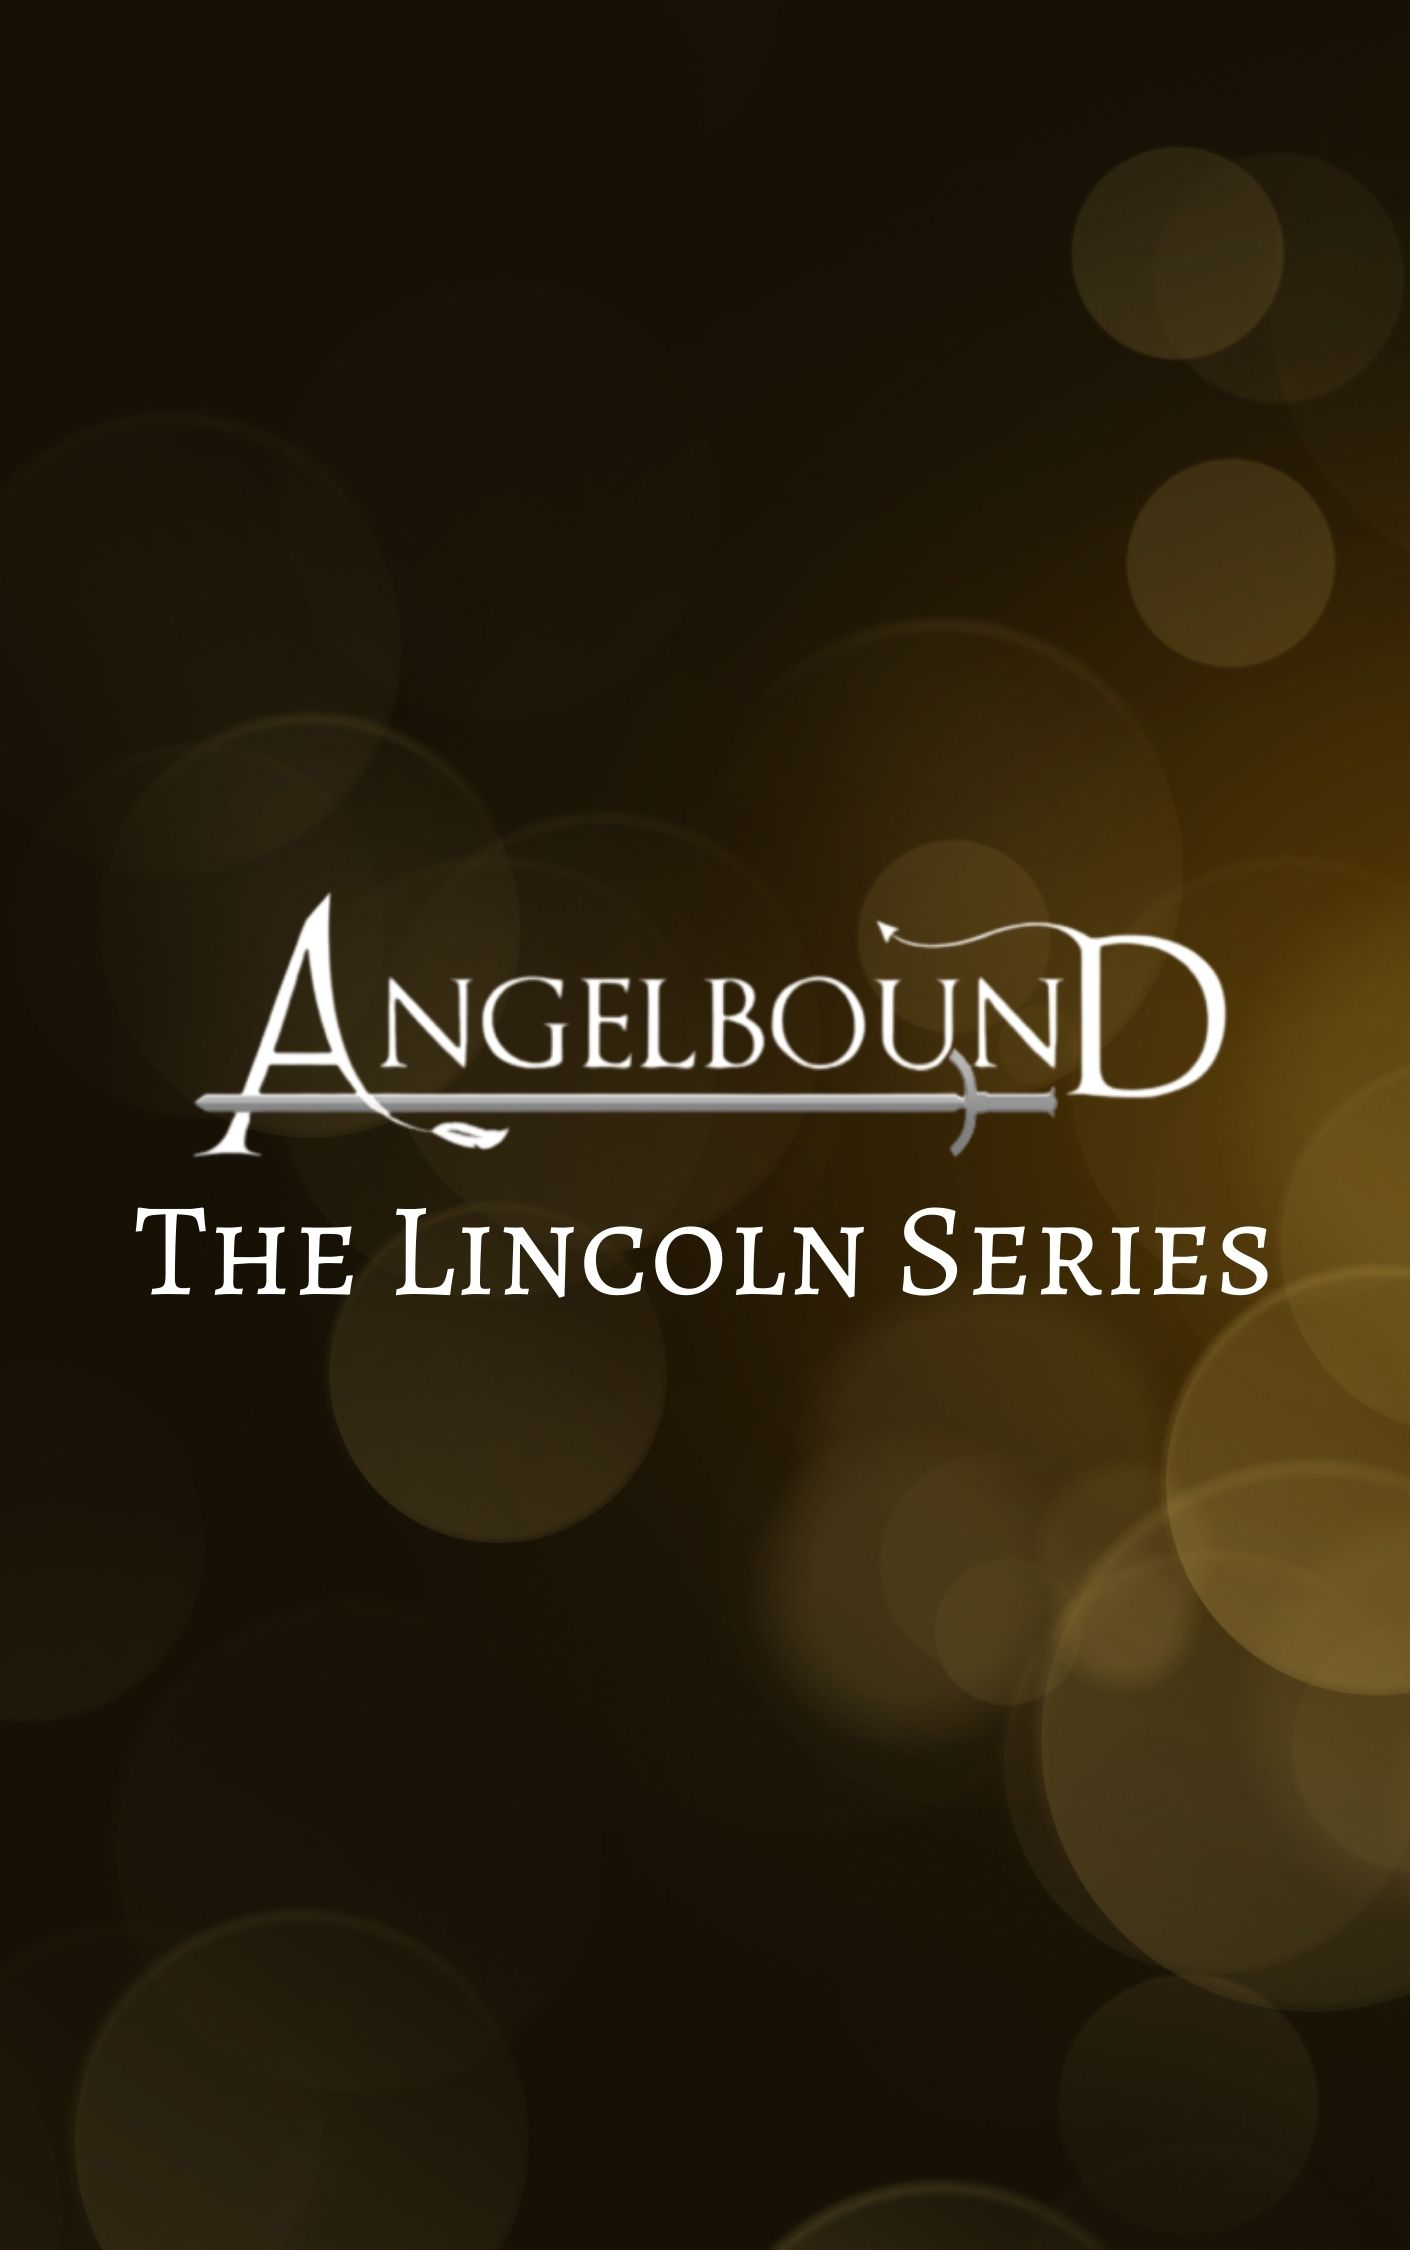 The Lincoln Series